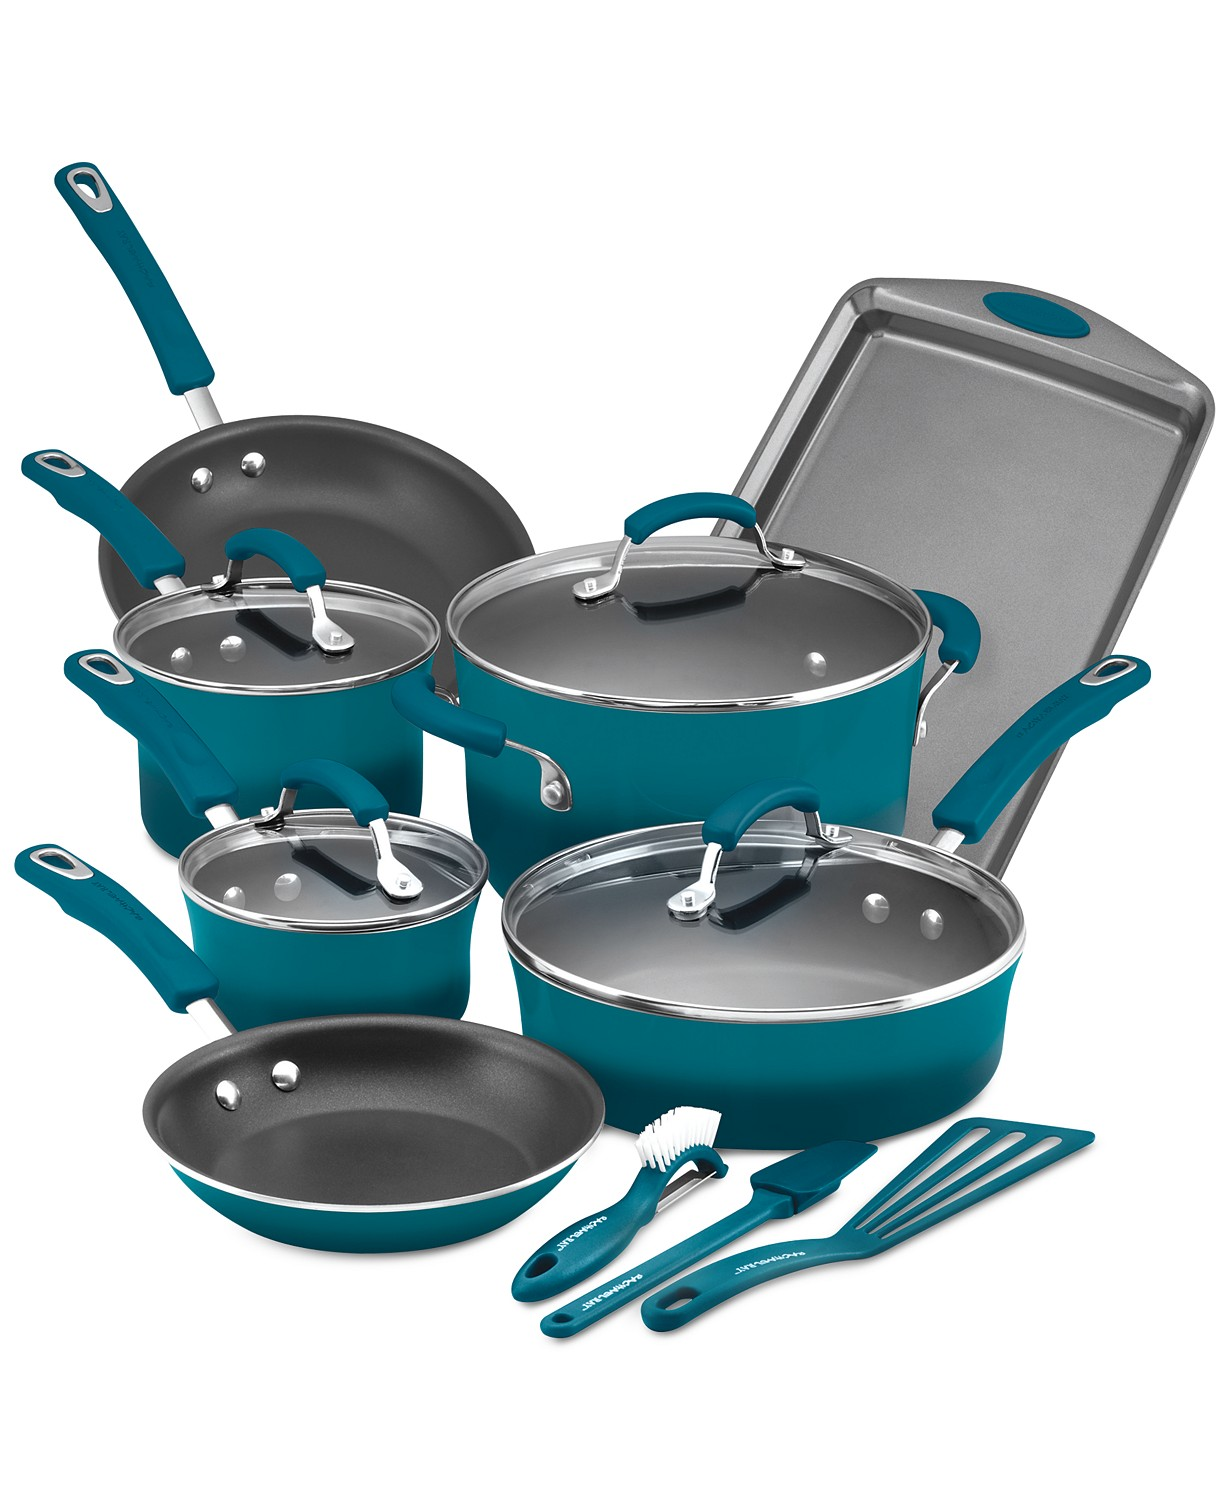 Rachal Ray 14-Pc. Nonstick Cookware Set